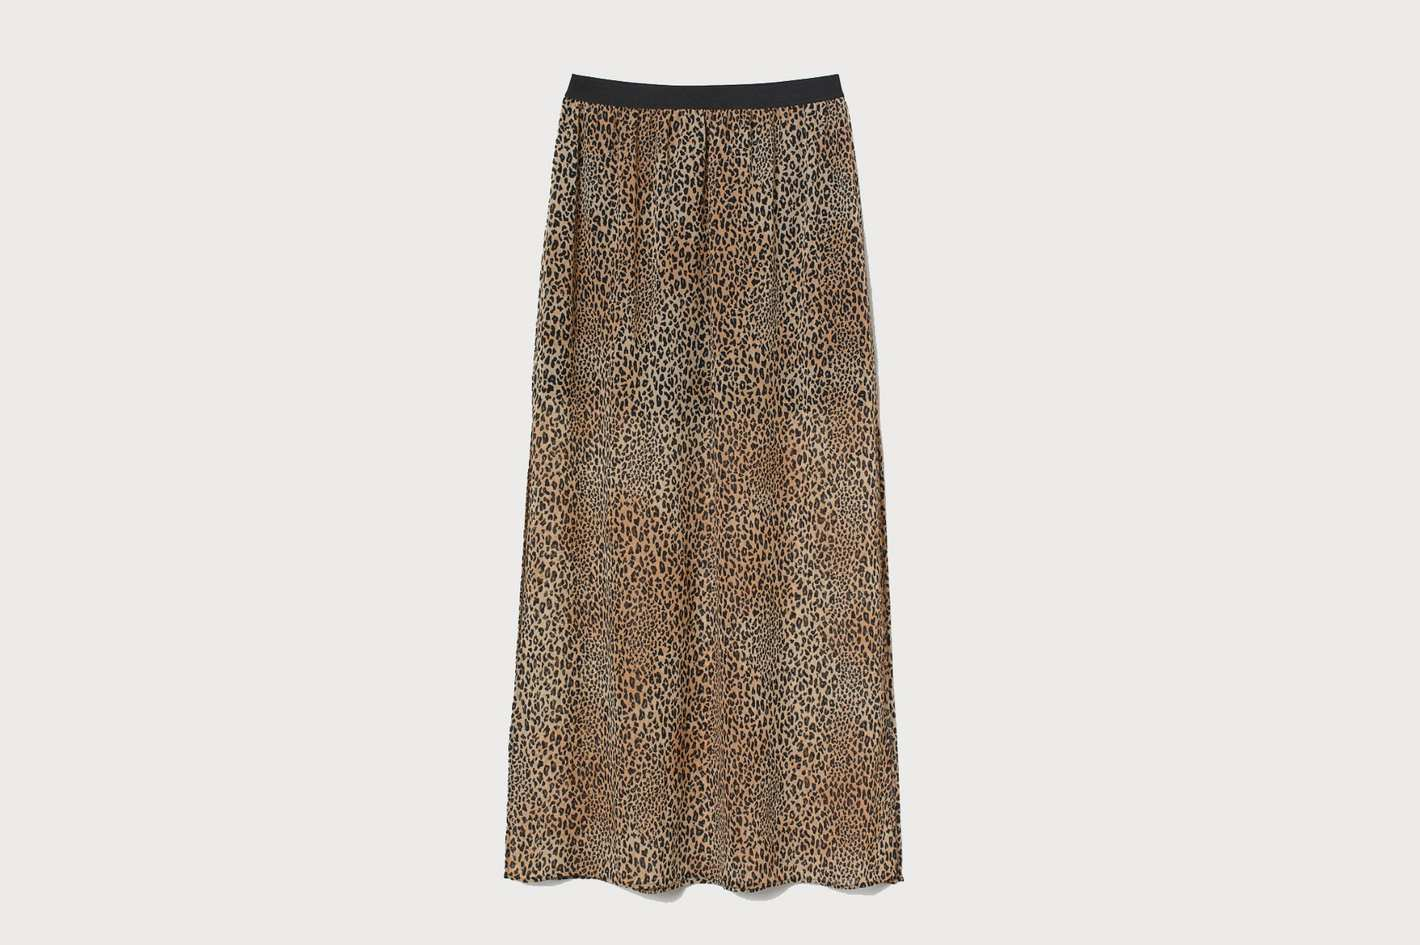 c7db482c5e The Best Leopard Skirts of 2019: Where to Buy the Trend